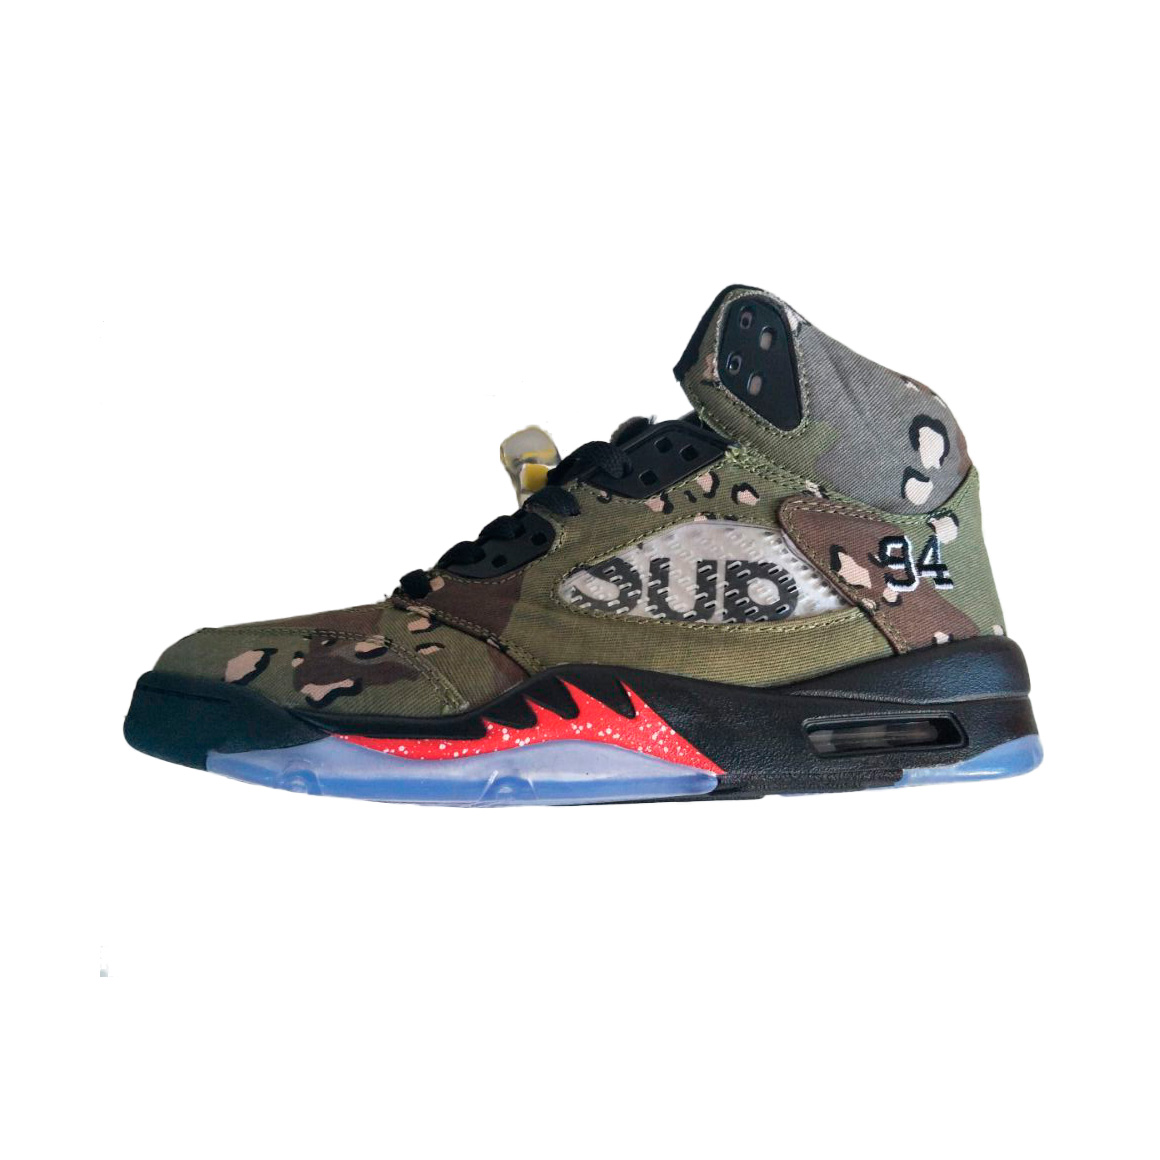 Supreme x Nike Air Jordan 5 Men Basketball Shoes Desert Camo